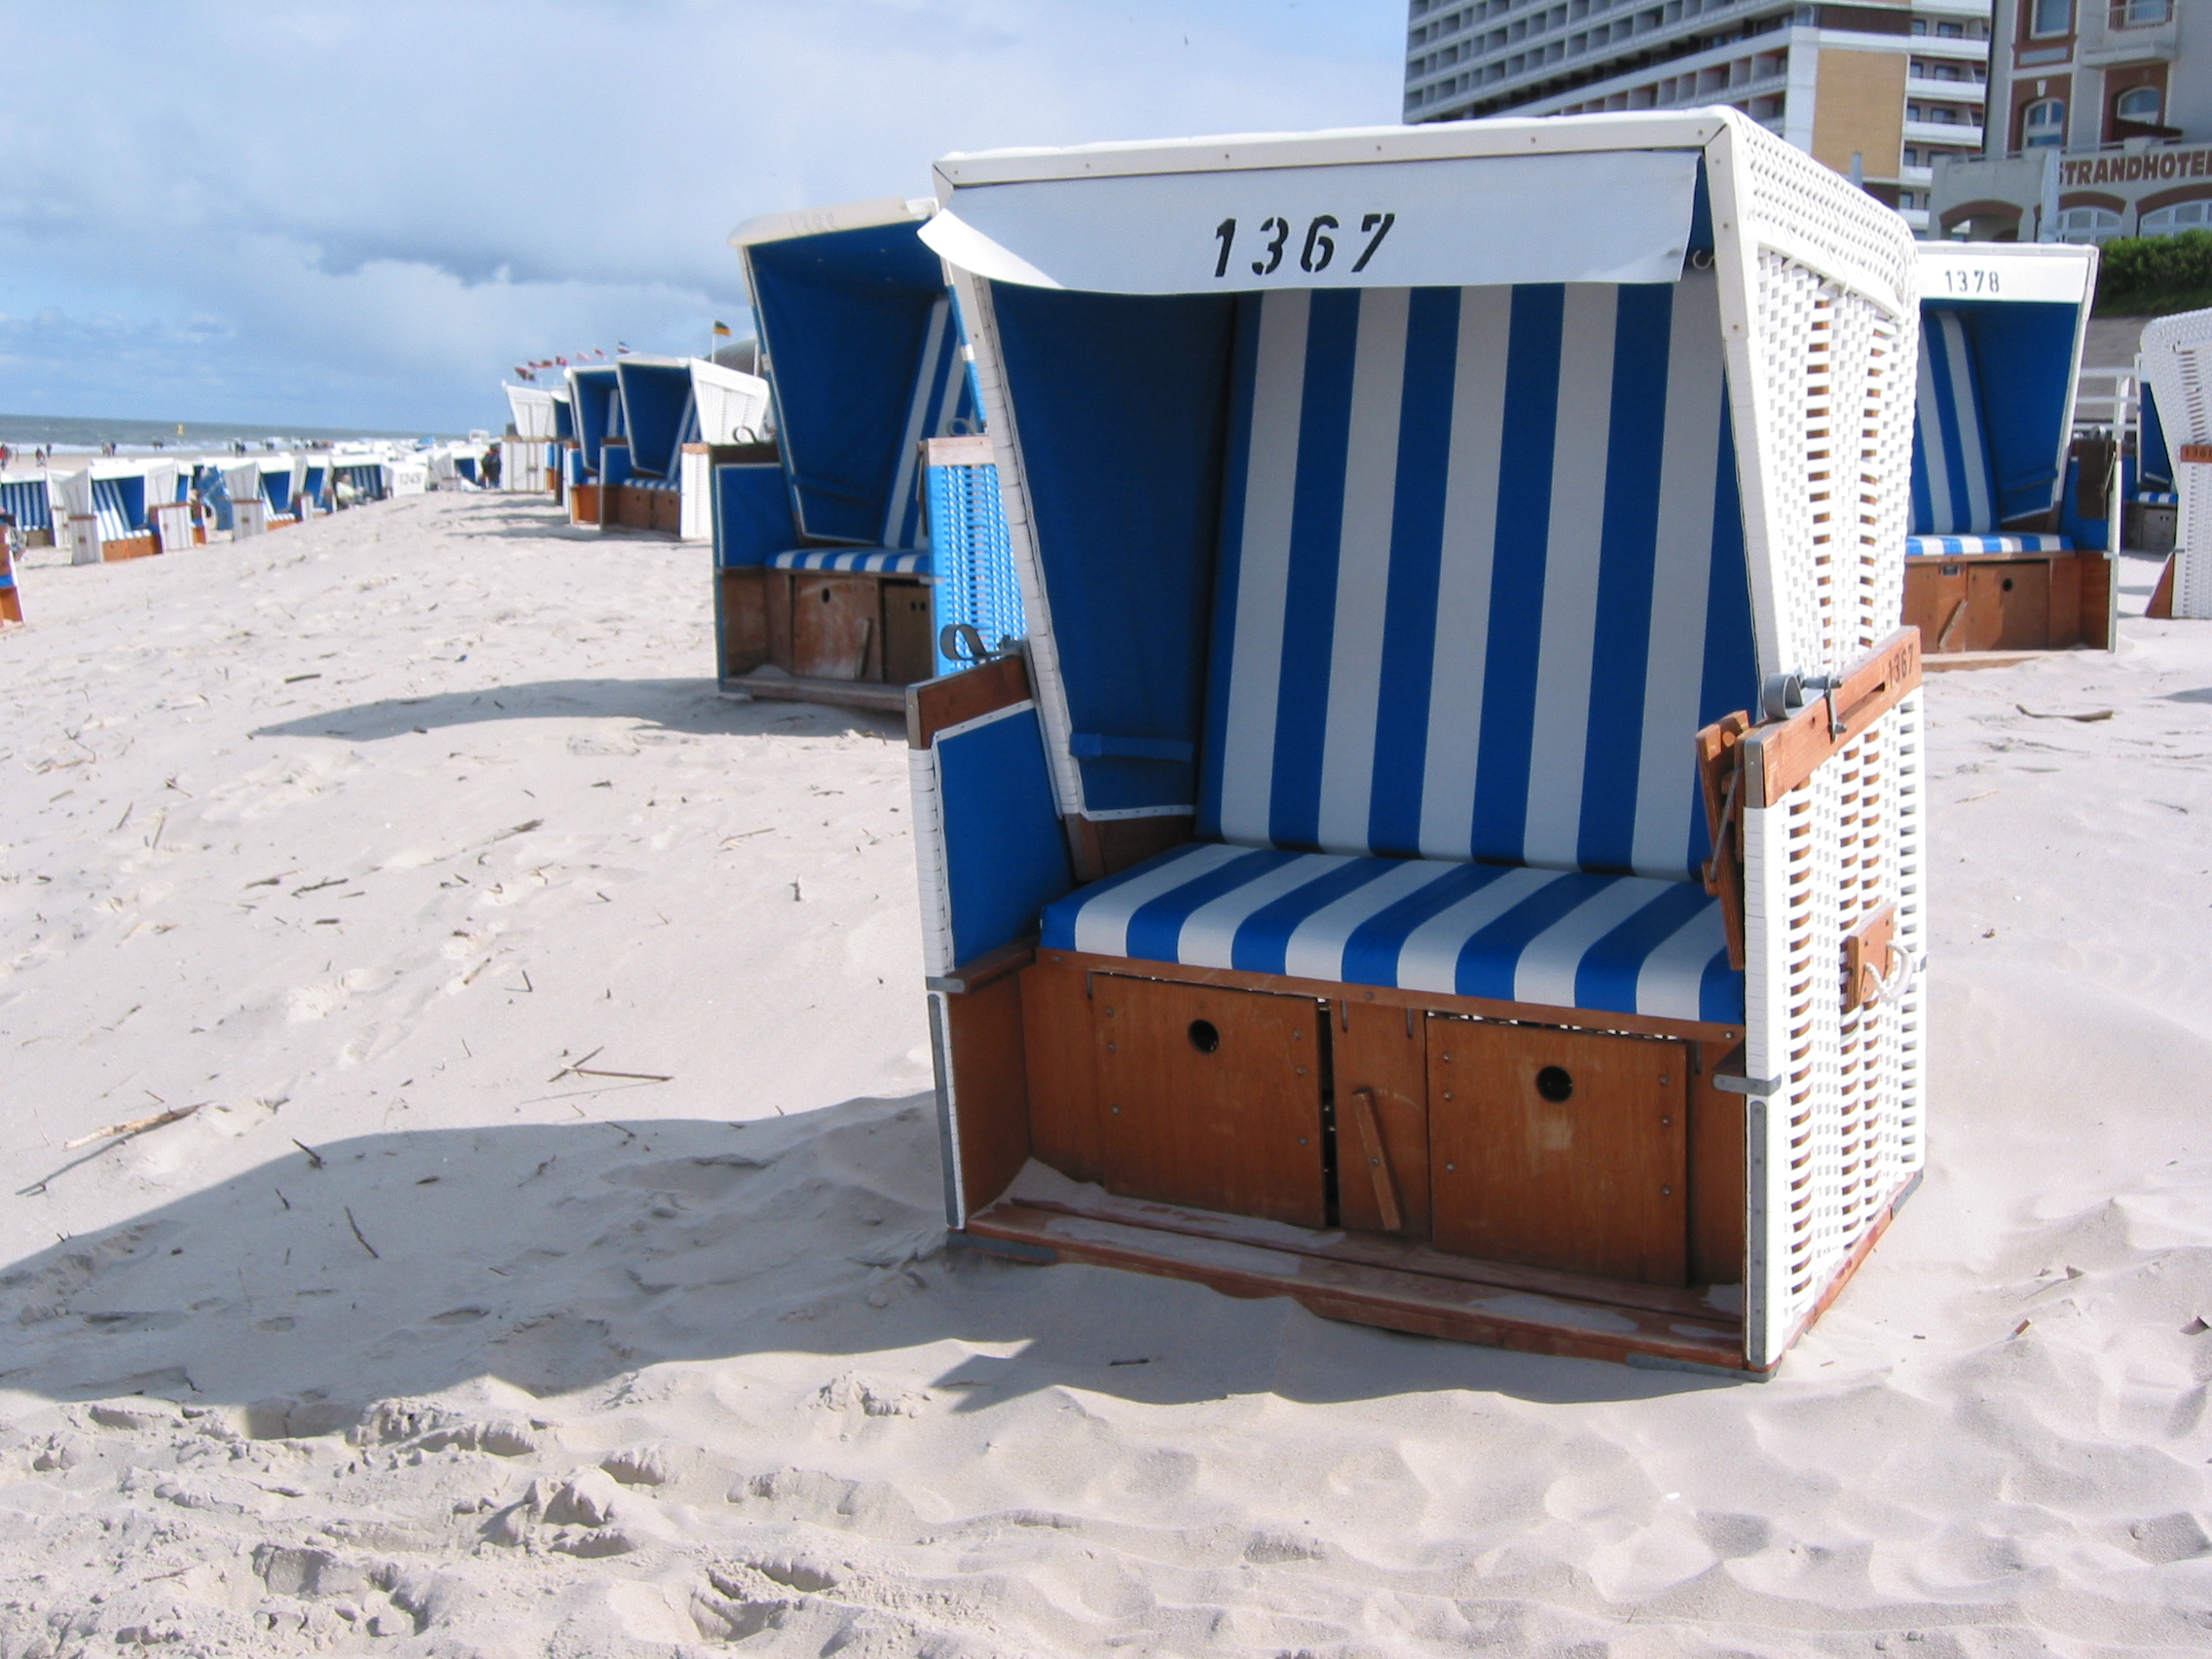 file 2003 05 sylt beach wikimedia commons. Black Bedroom Furniture Sets. Home Design Ideas